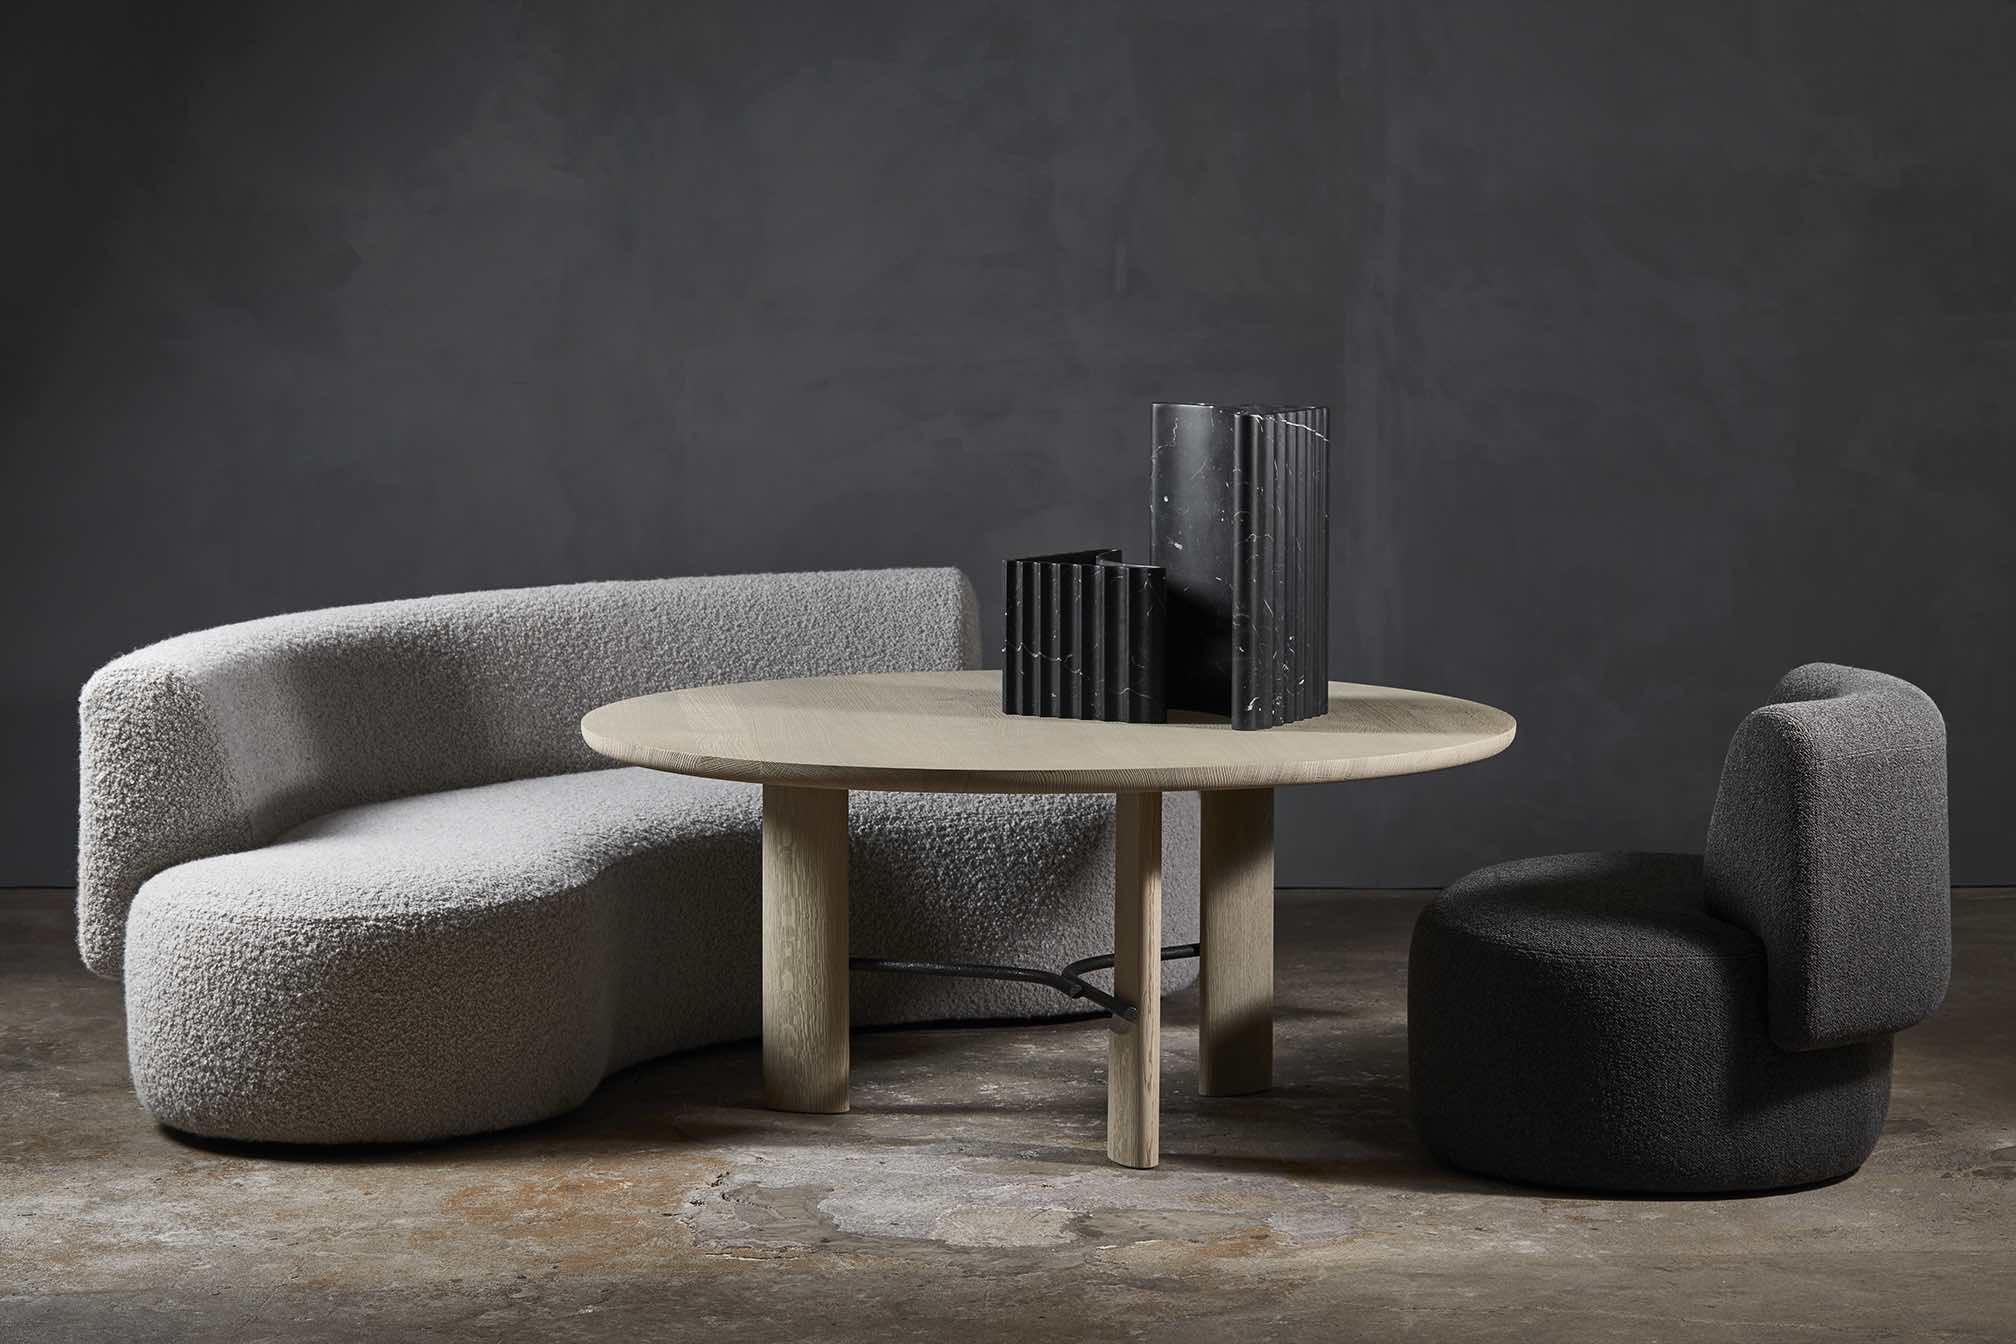 LEK-sofa-Christophe-Delcourt-Collection_Particuliere